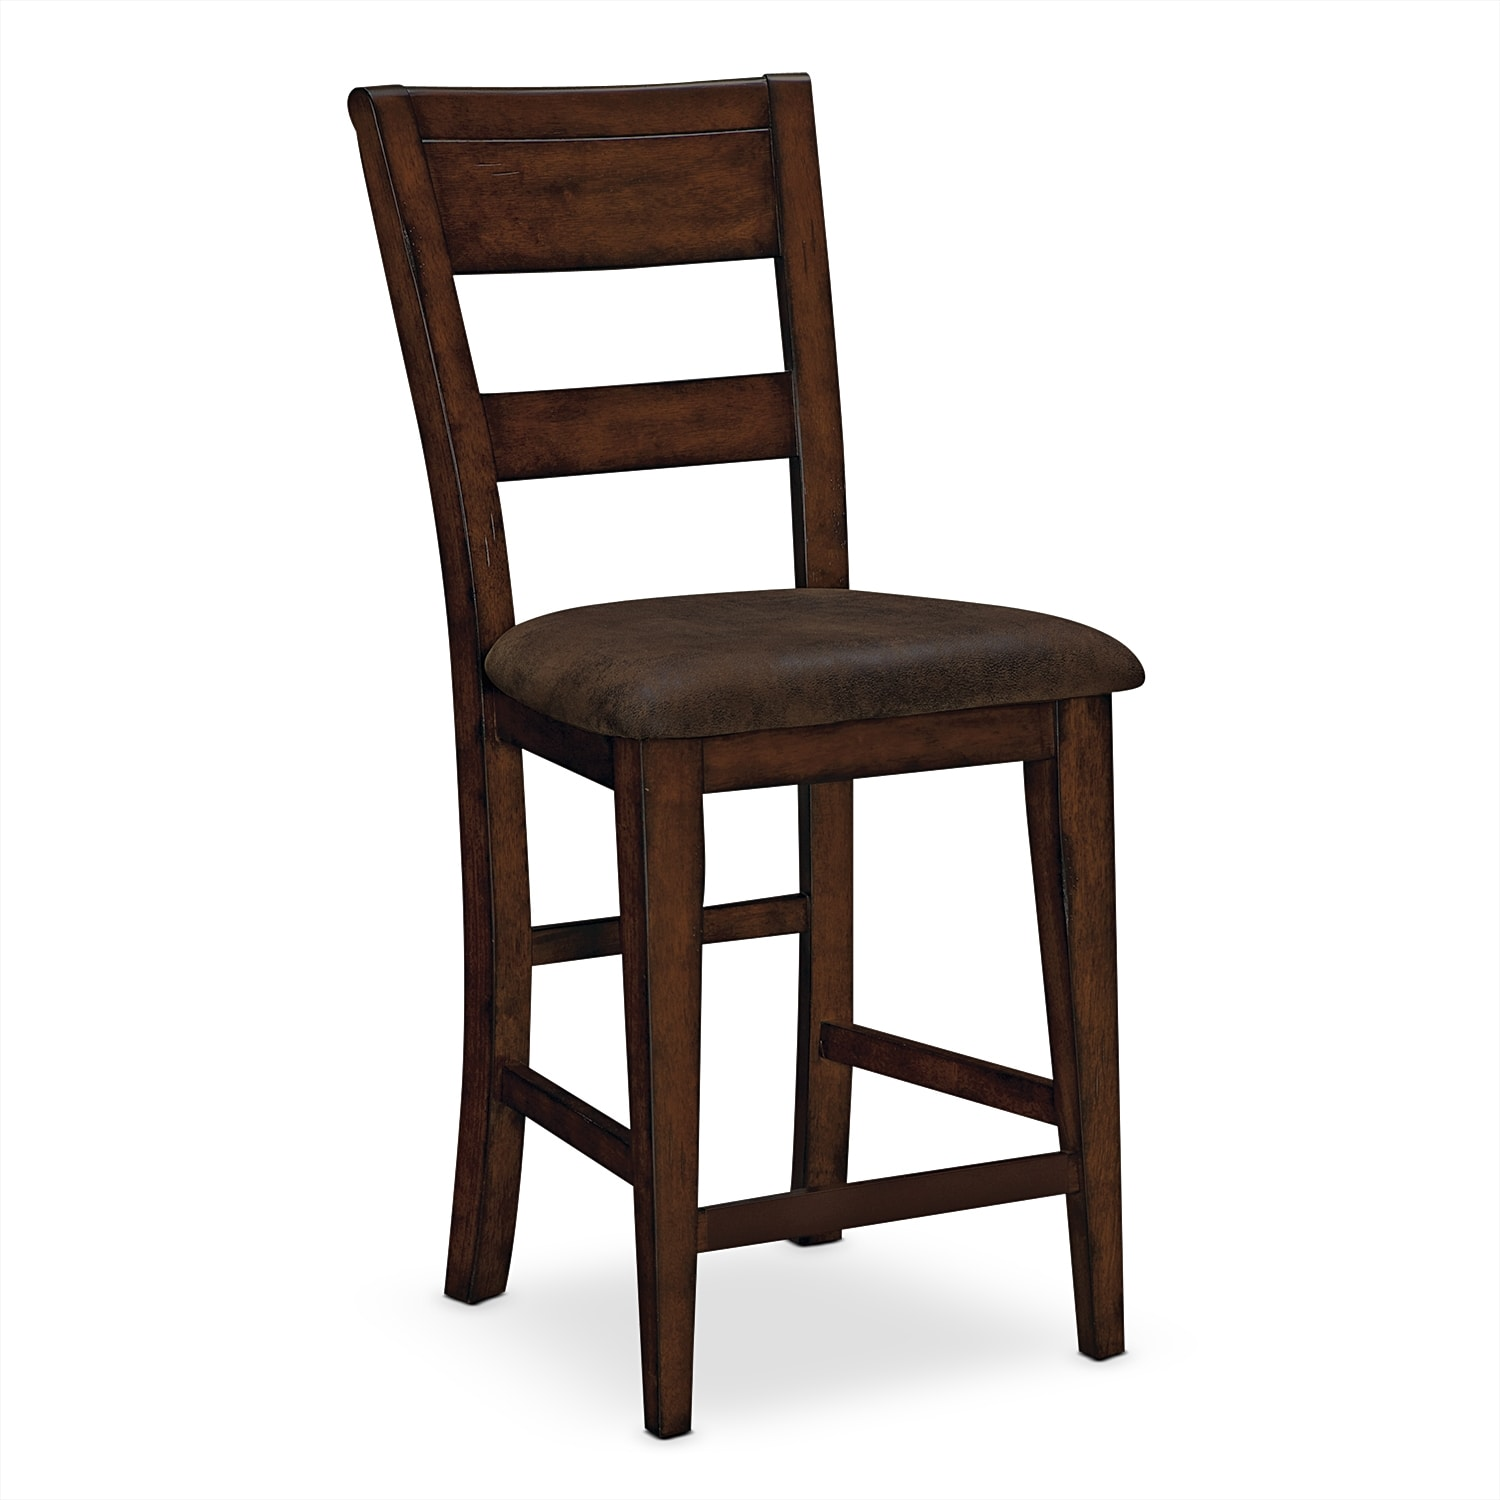 Everett dining room counter height stool value city for Furniture in everett